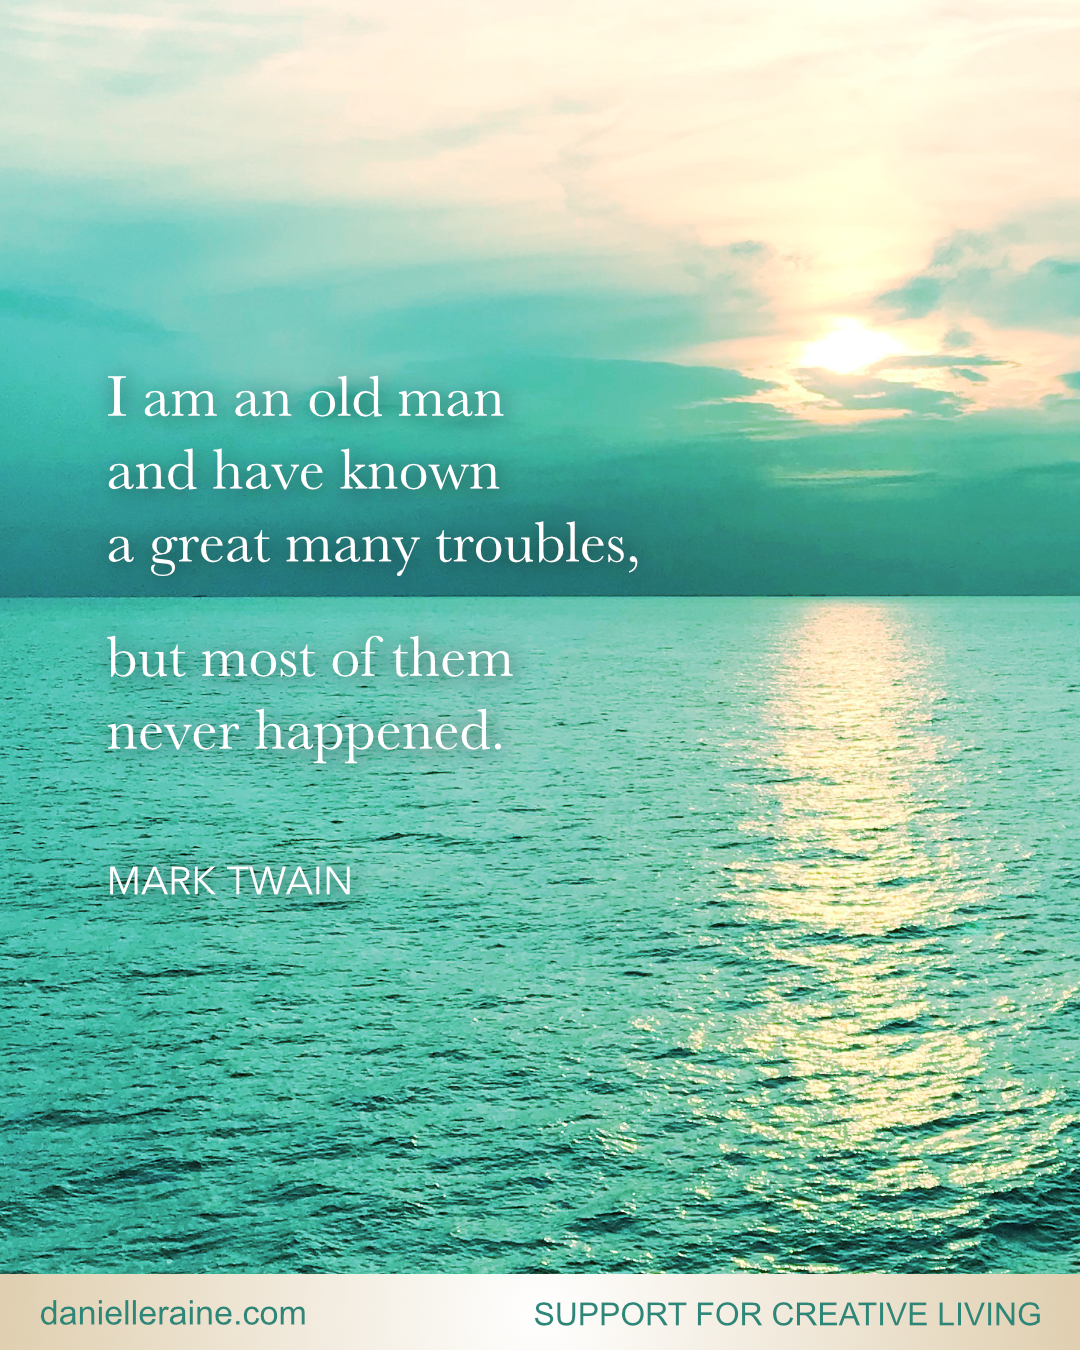 mark twain many troubles never happened quote blog pin